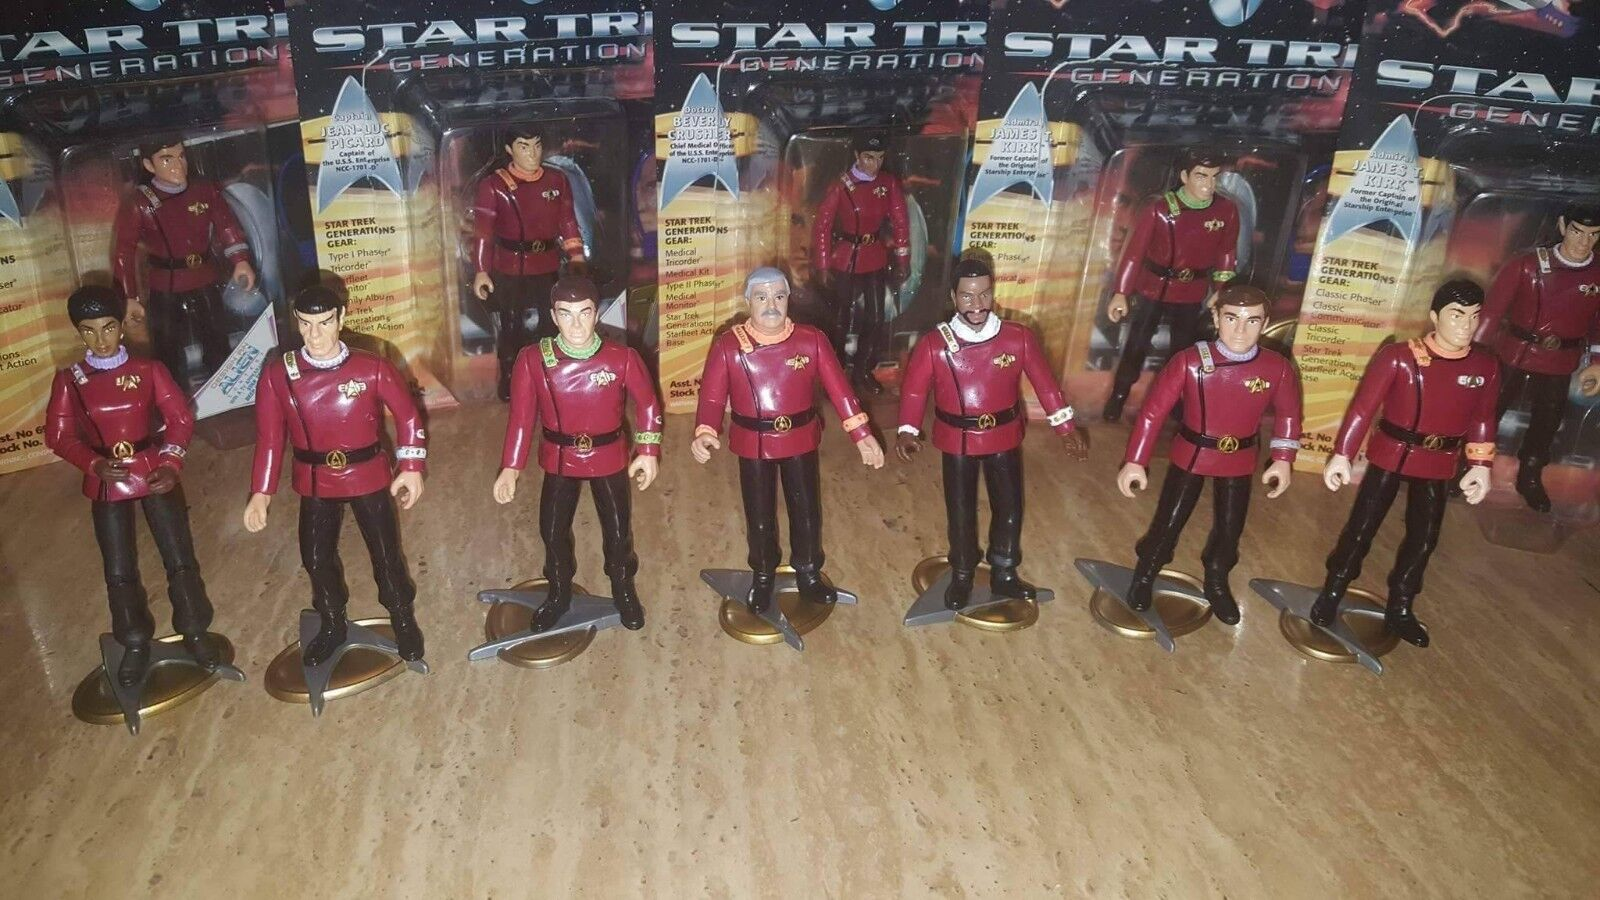 STAR TREK CUSTOM ACTION FIGURES TOS TNG VOYAGER DS9 STD Made to order lot of 7